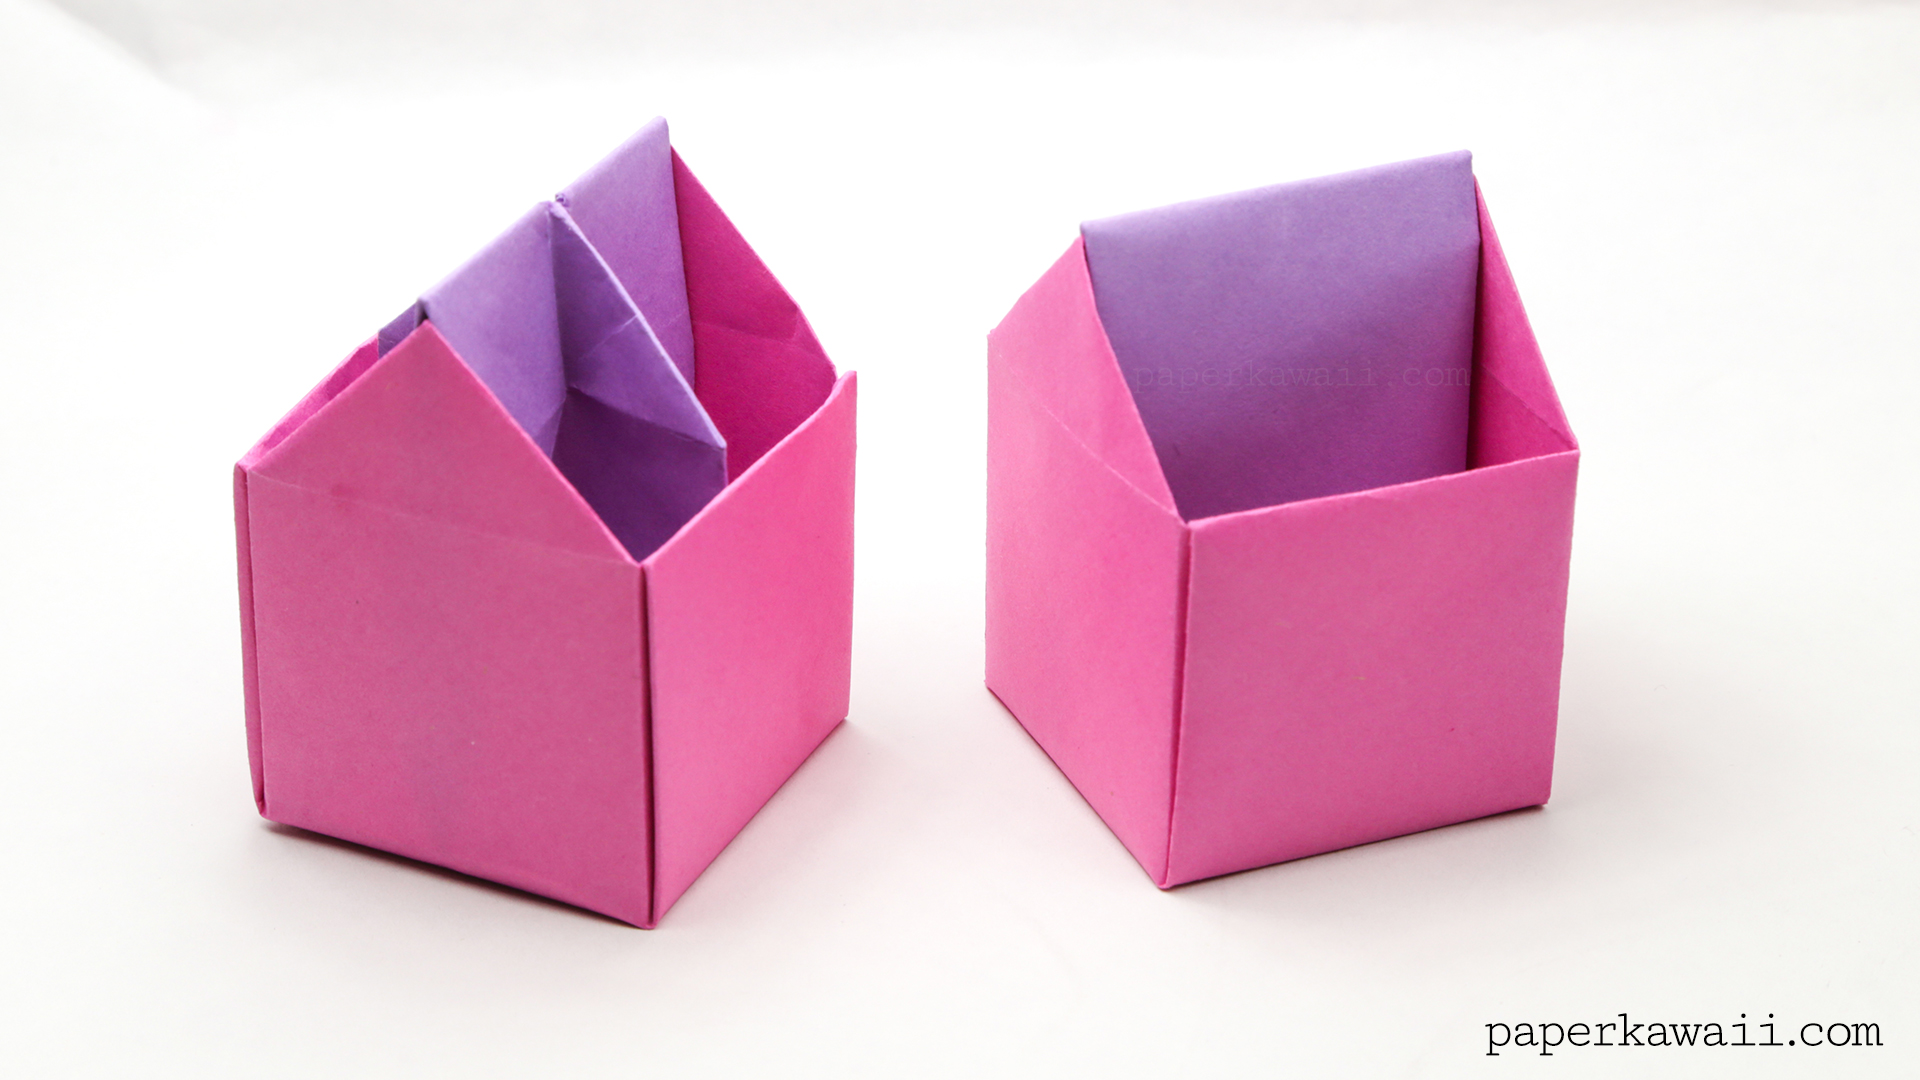 Origami Box Paper Kawaii